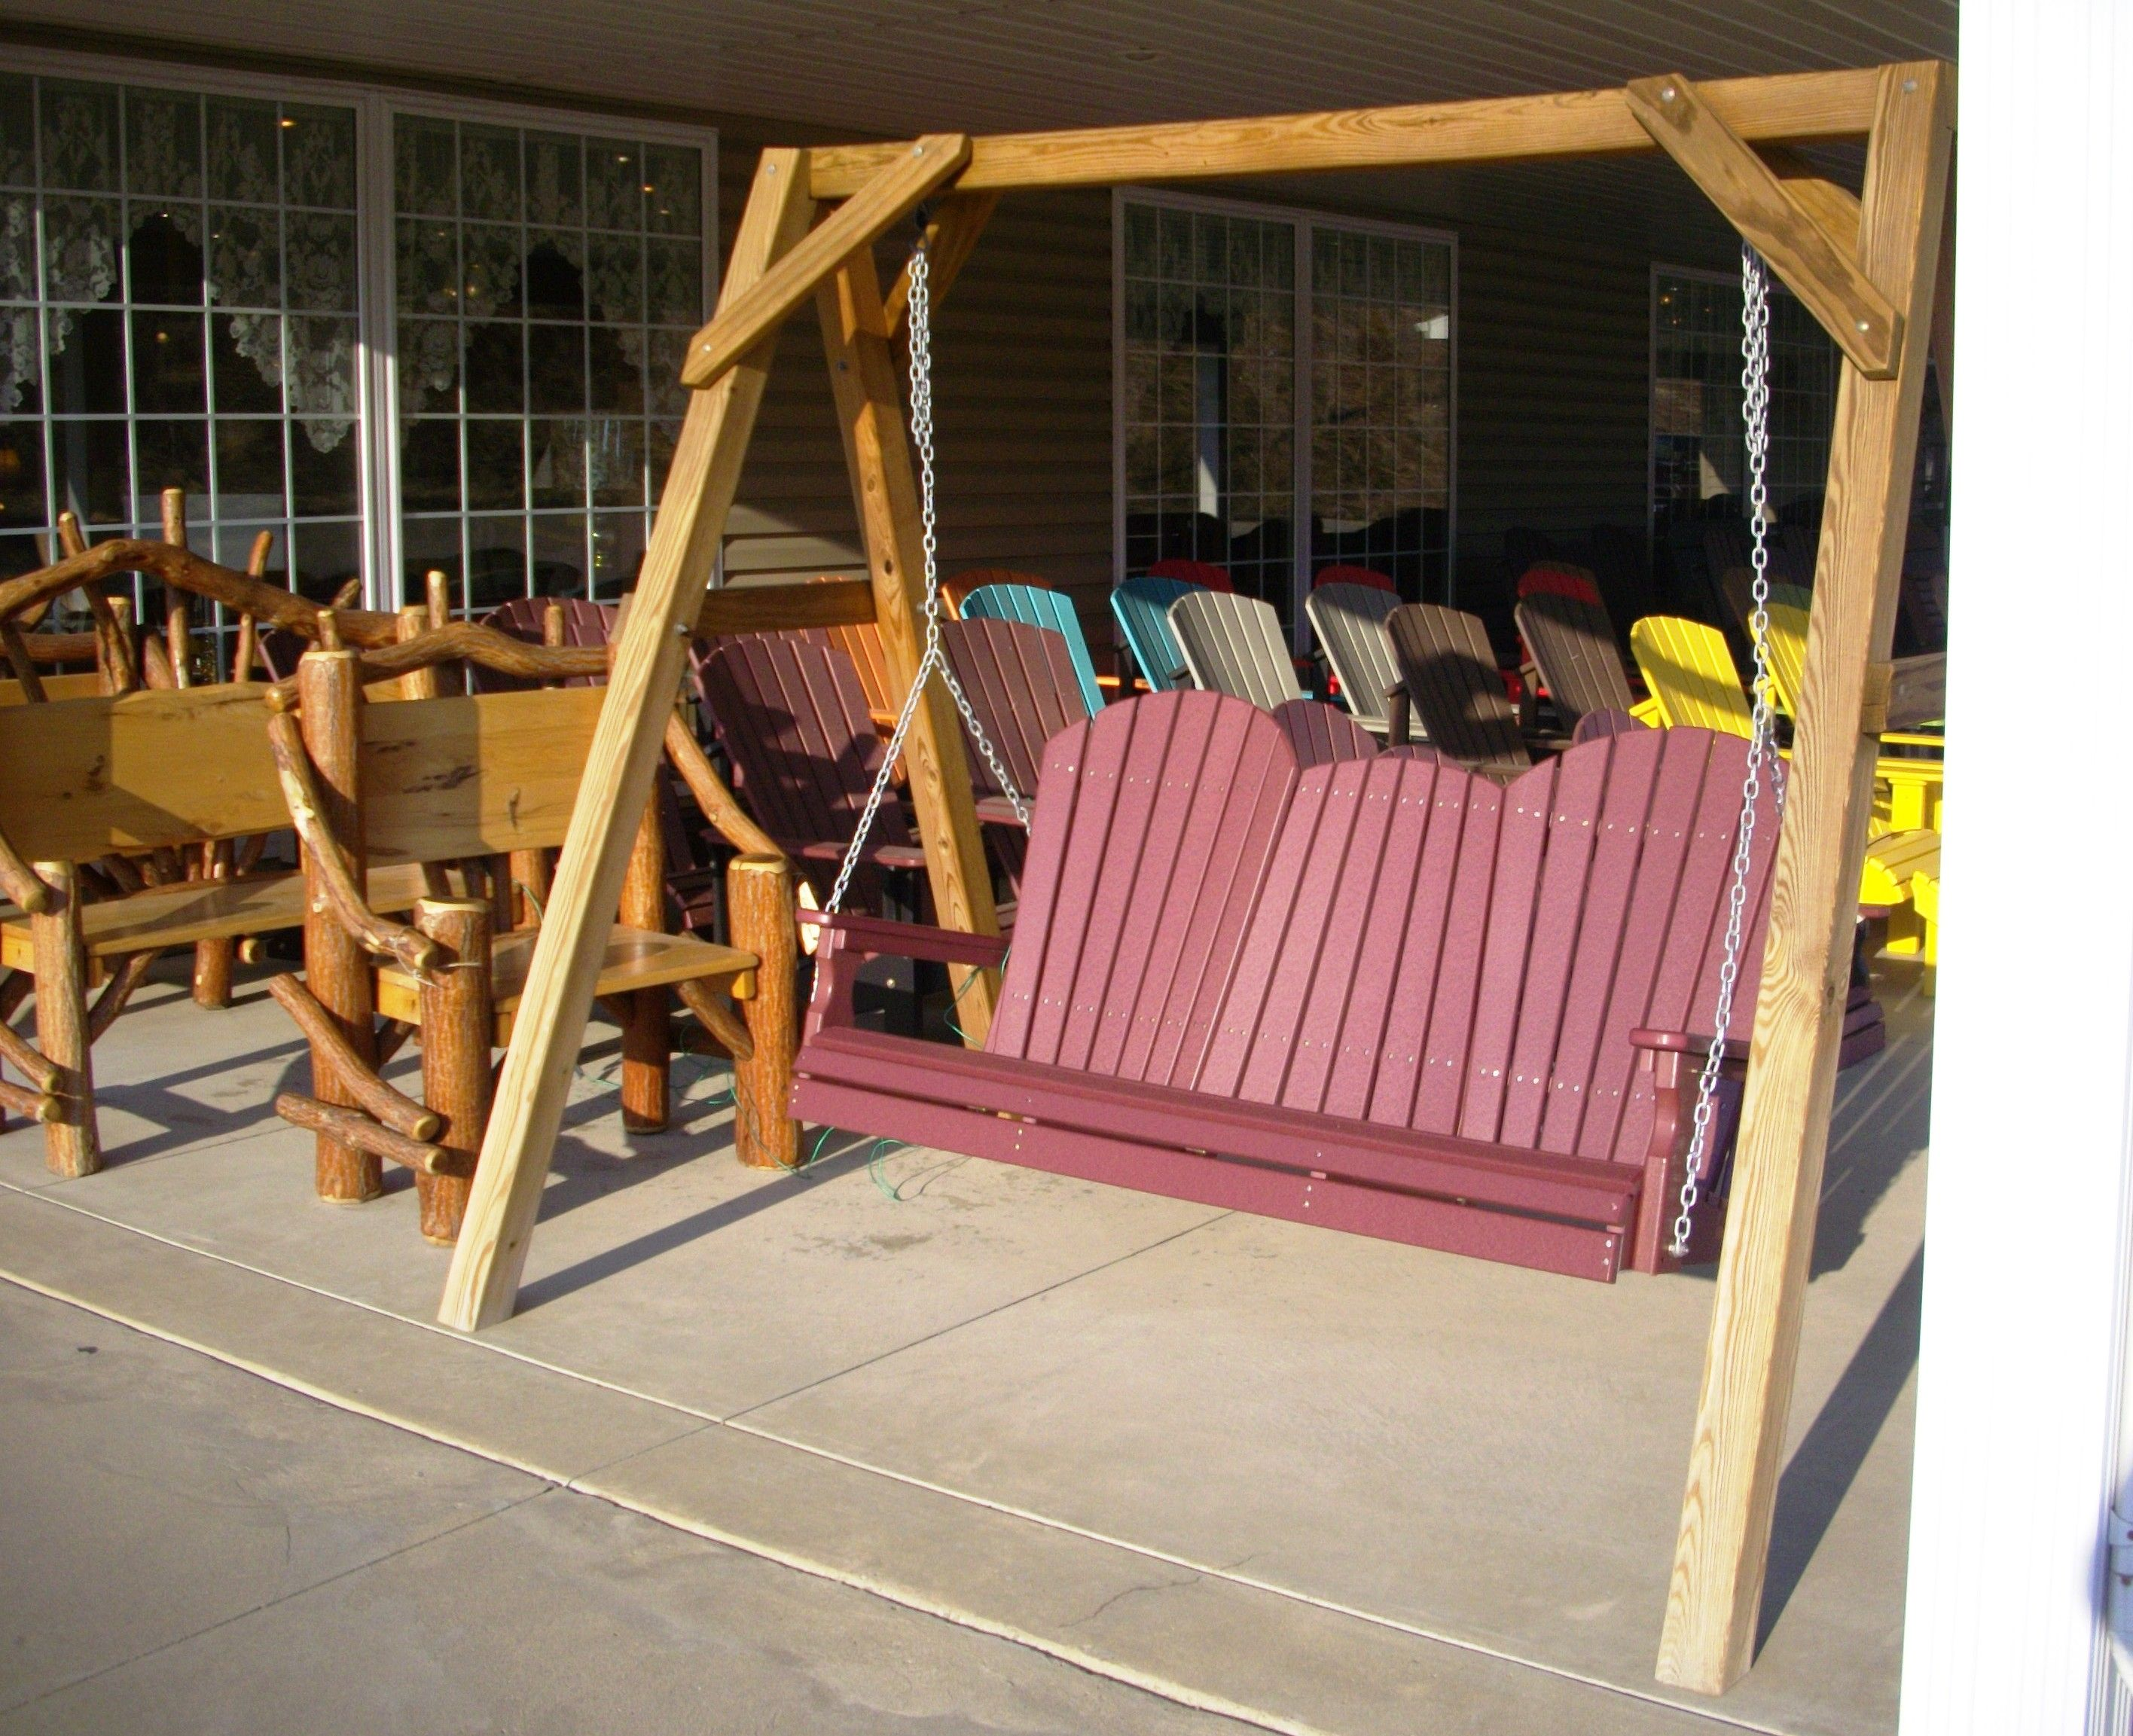 New Inventory Of Outdoor Furniture Has Arrived At The